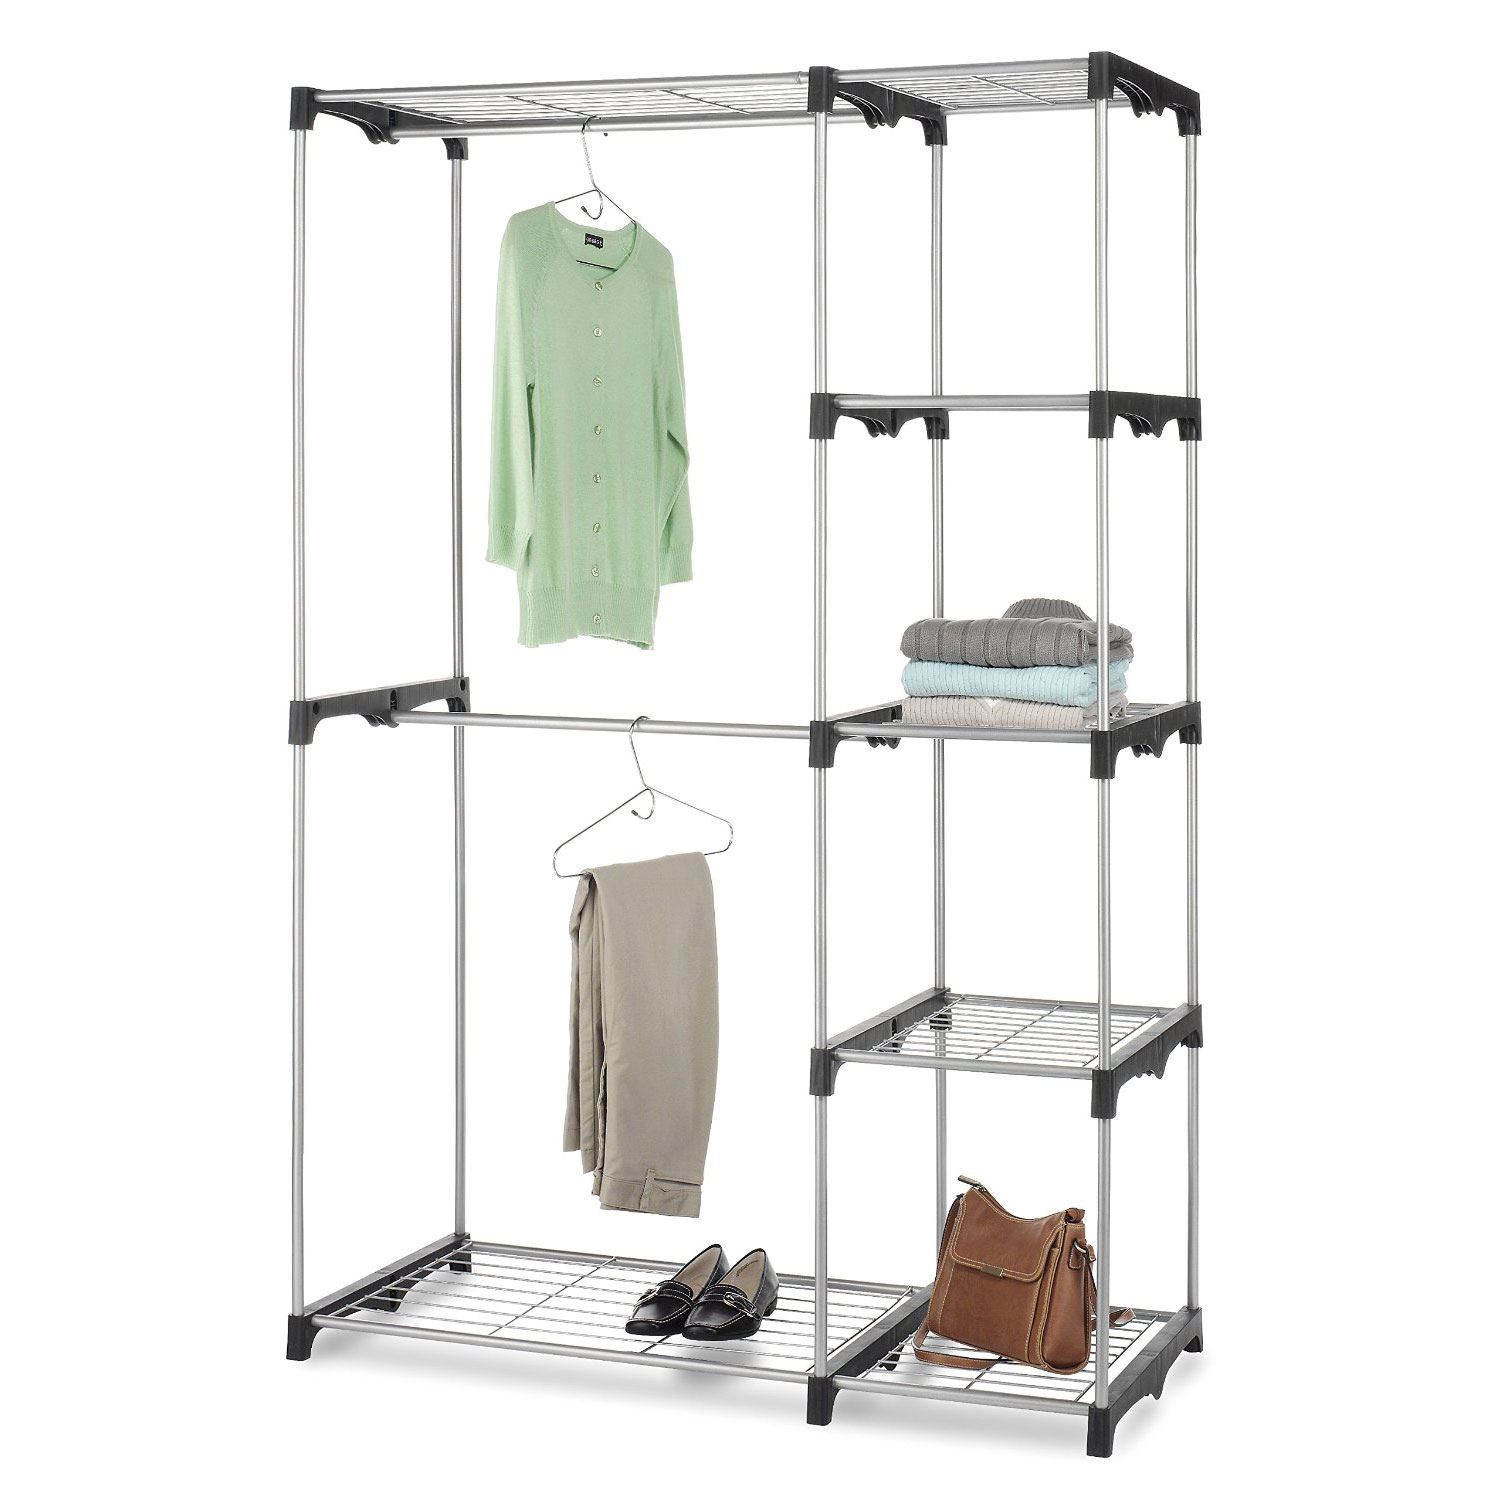 wooden ikea home designs standing with furniture your design three shoe mudroom two storage stands hanger effective free ideas clothes stylish tier and for stand coat rack